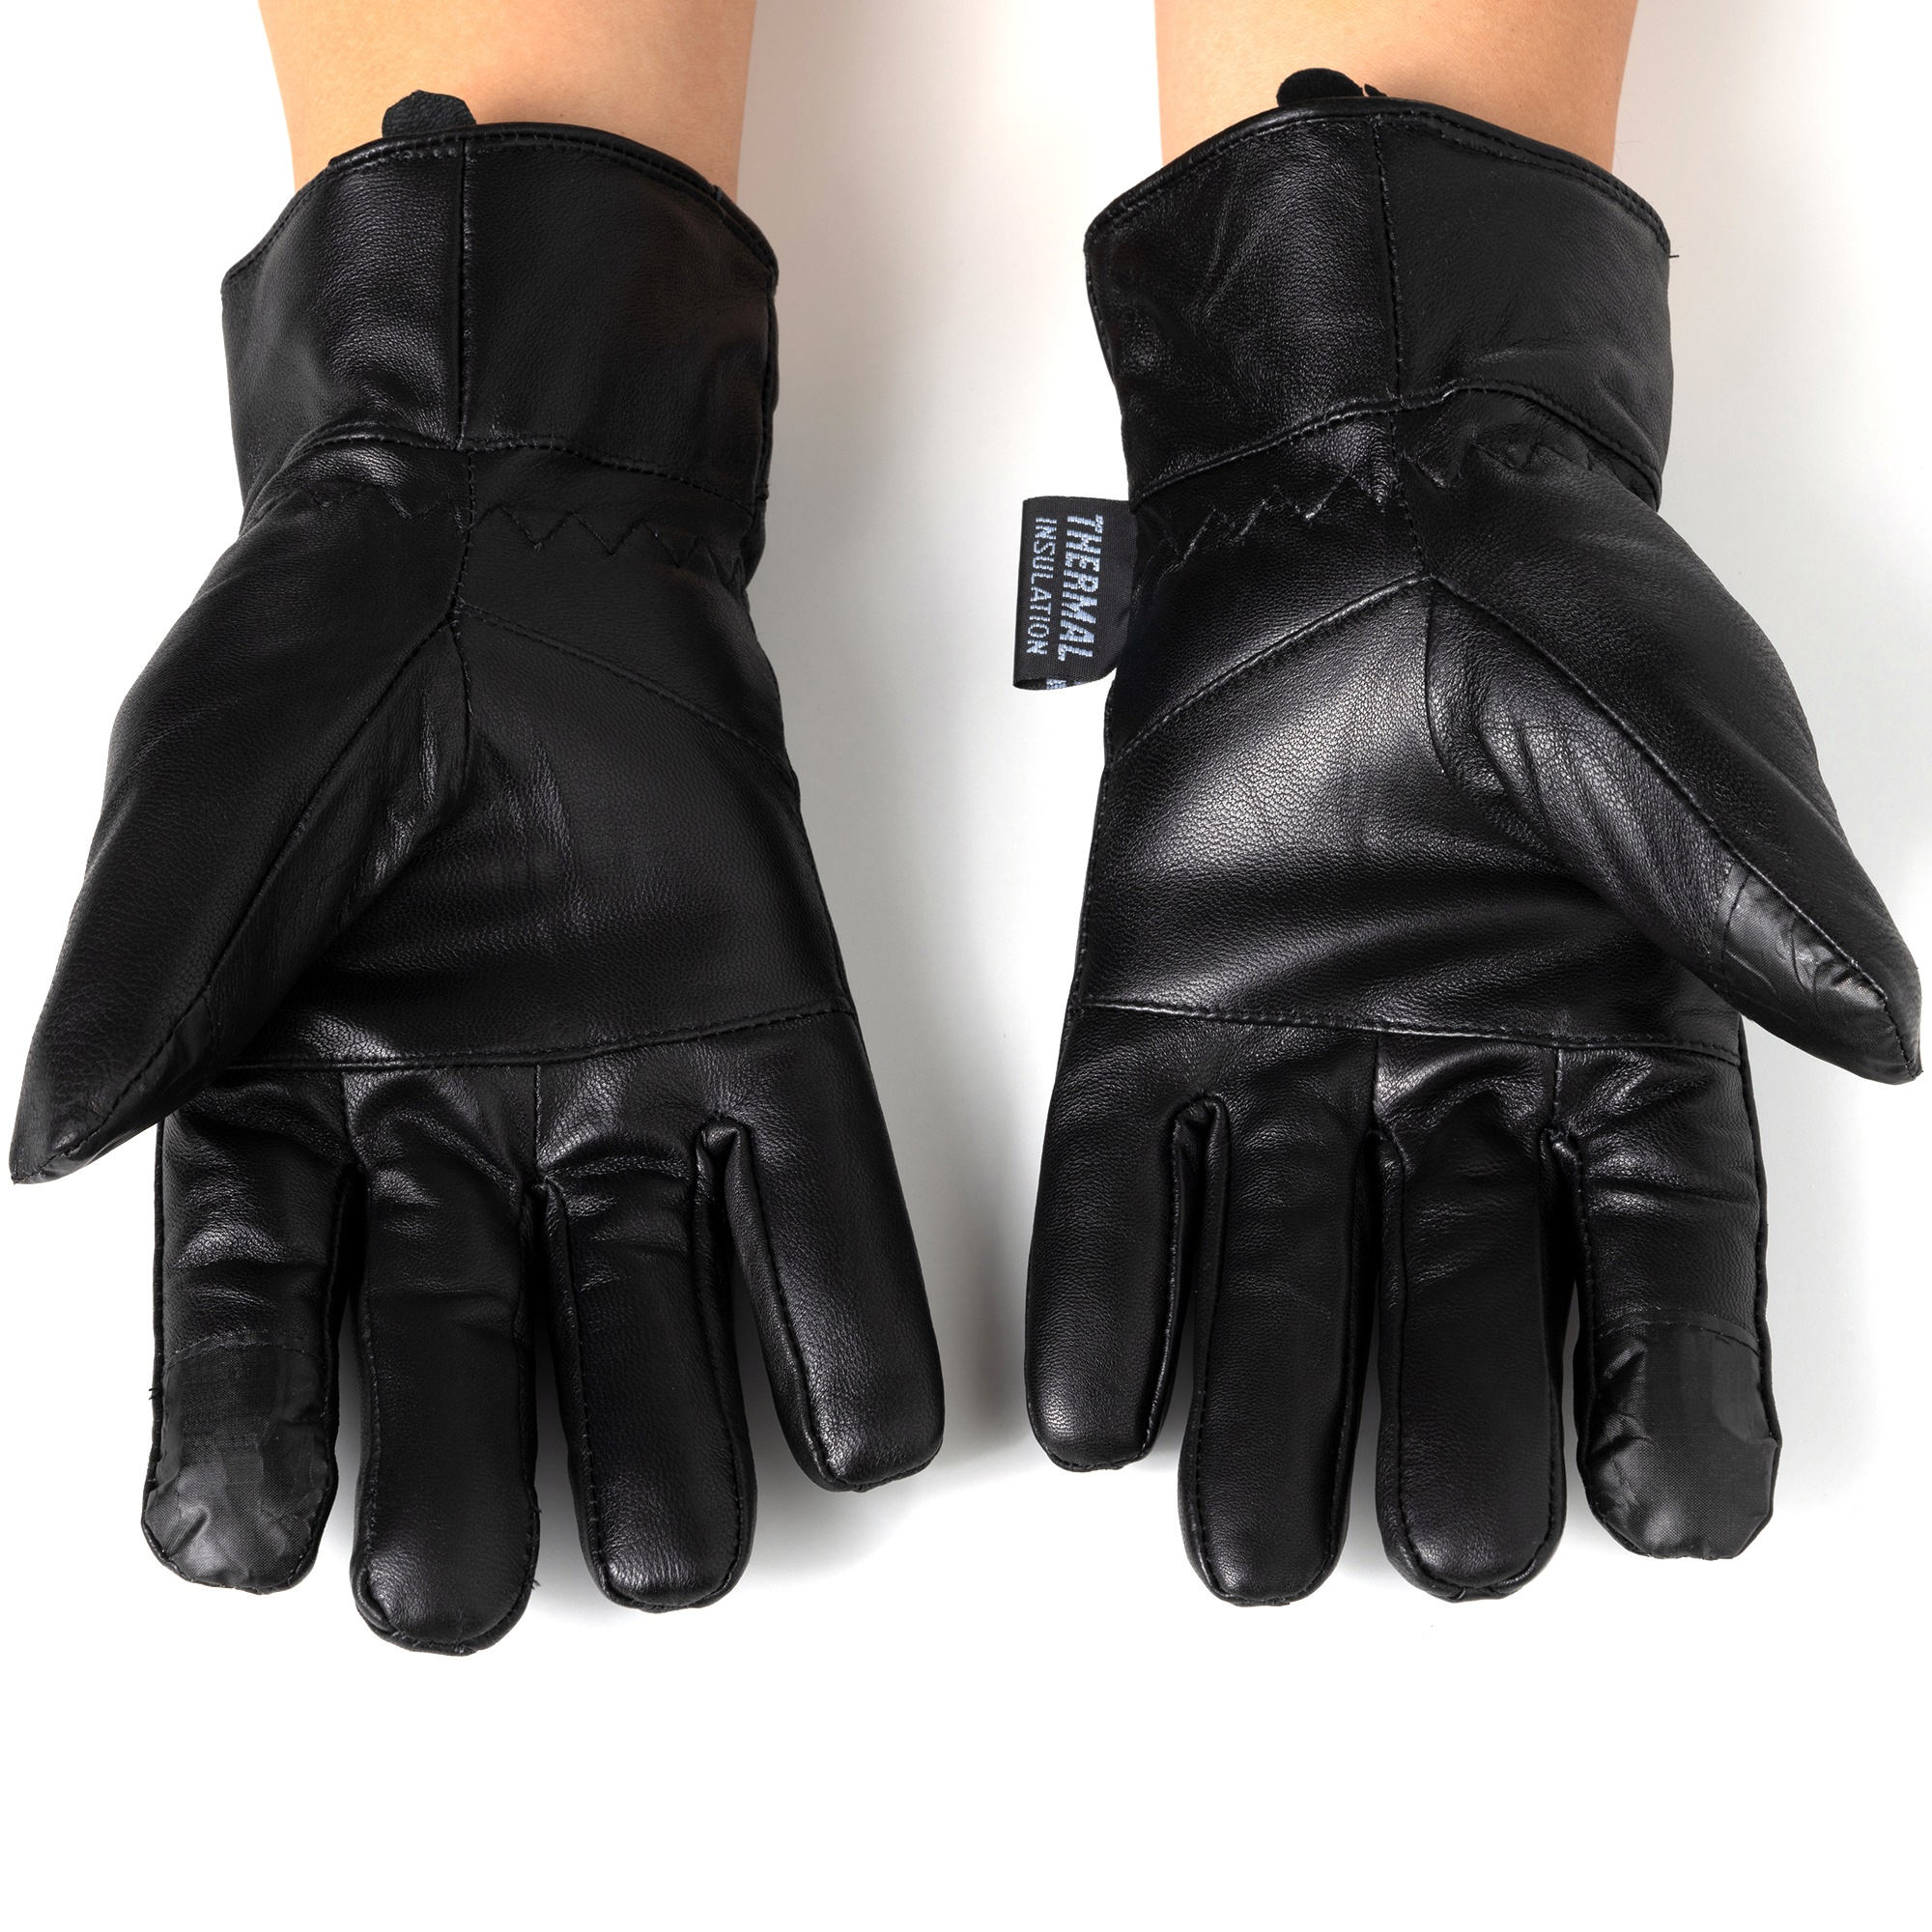 Alpine-Swiss-Mens-Touch-Screen-Gloves-Leather-Thermal-Lined-Phone-Texting-Gloves thumbnail 14